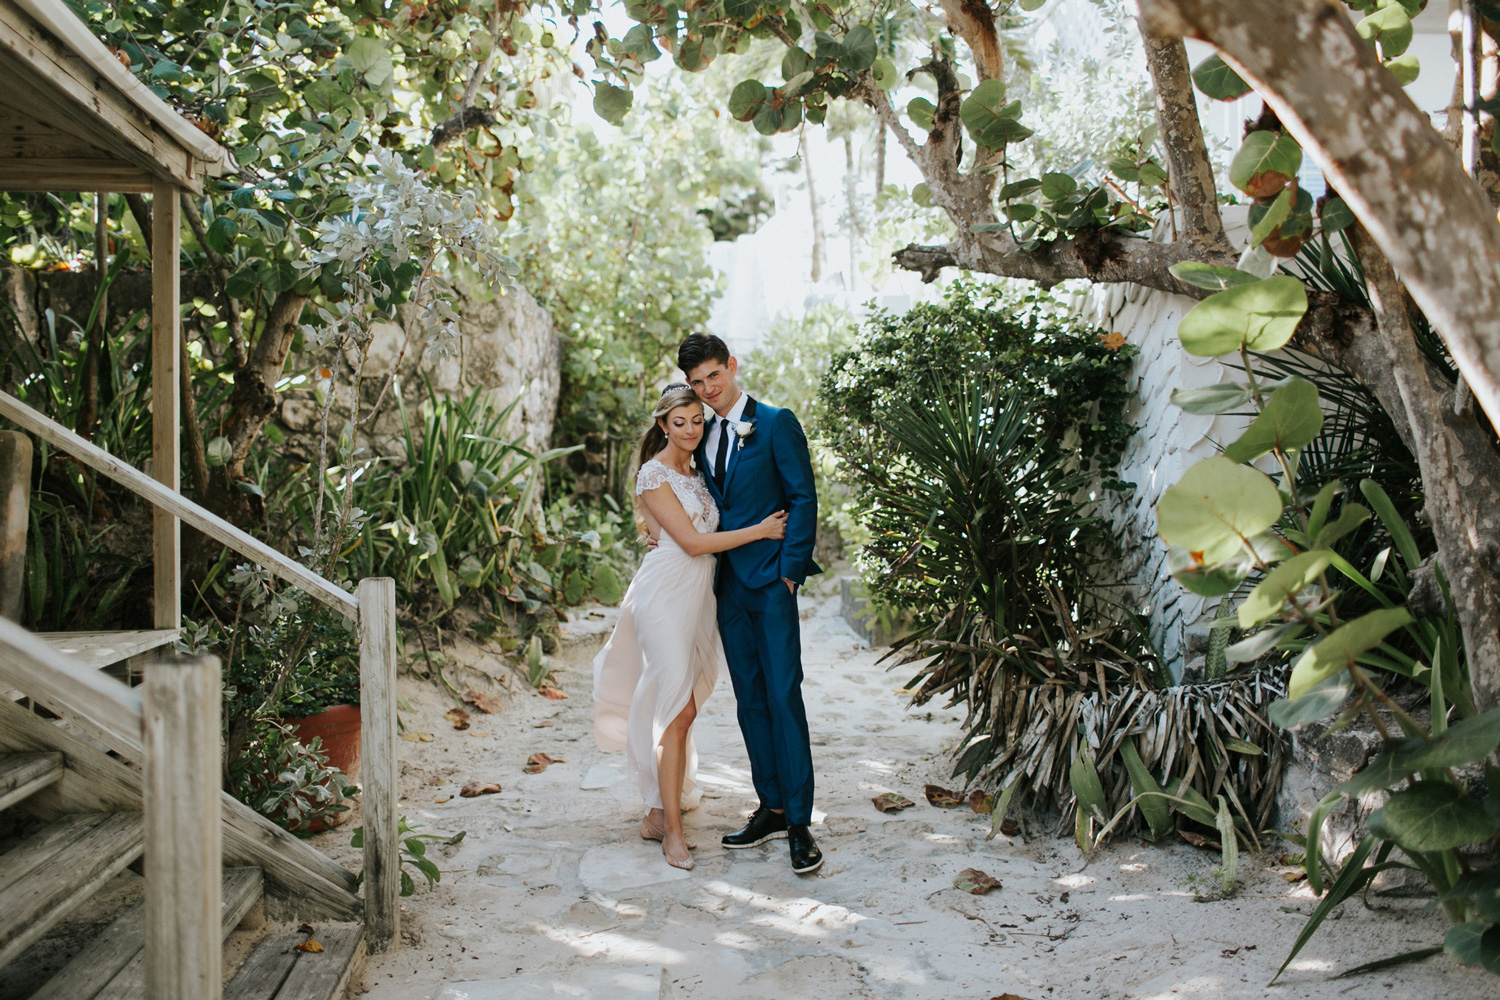 Ocean view club wedding harbour island bahamas ocean view club wedding harbour island bahamas junglespirit Image collections